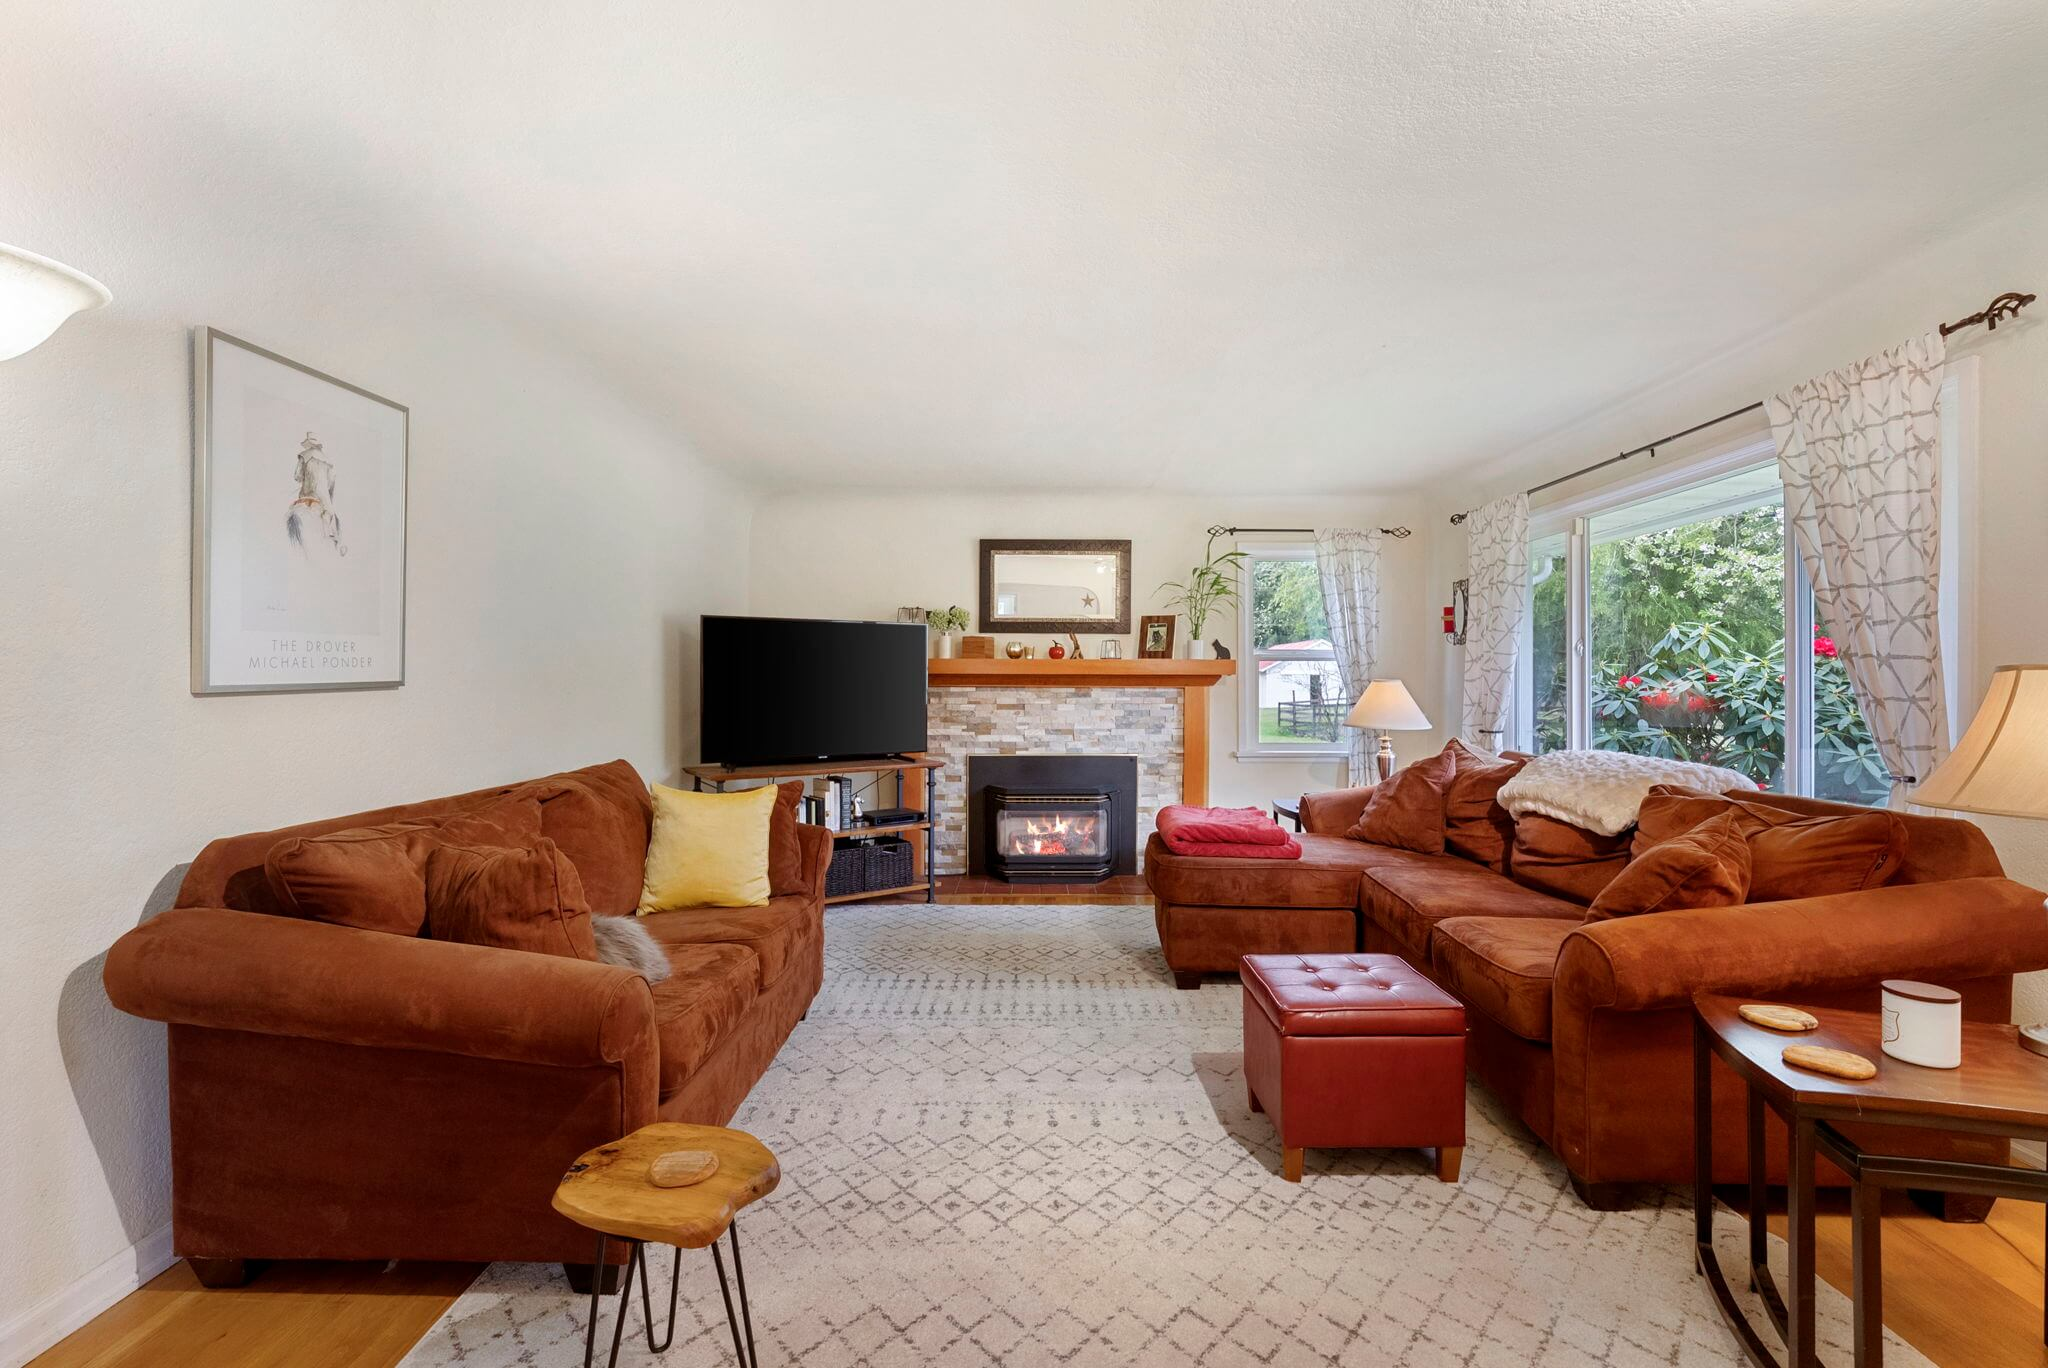 Living room with hardwood floors, coved ceiling and gas fireplace